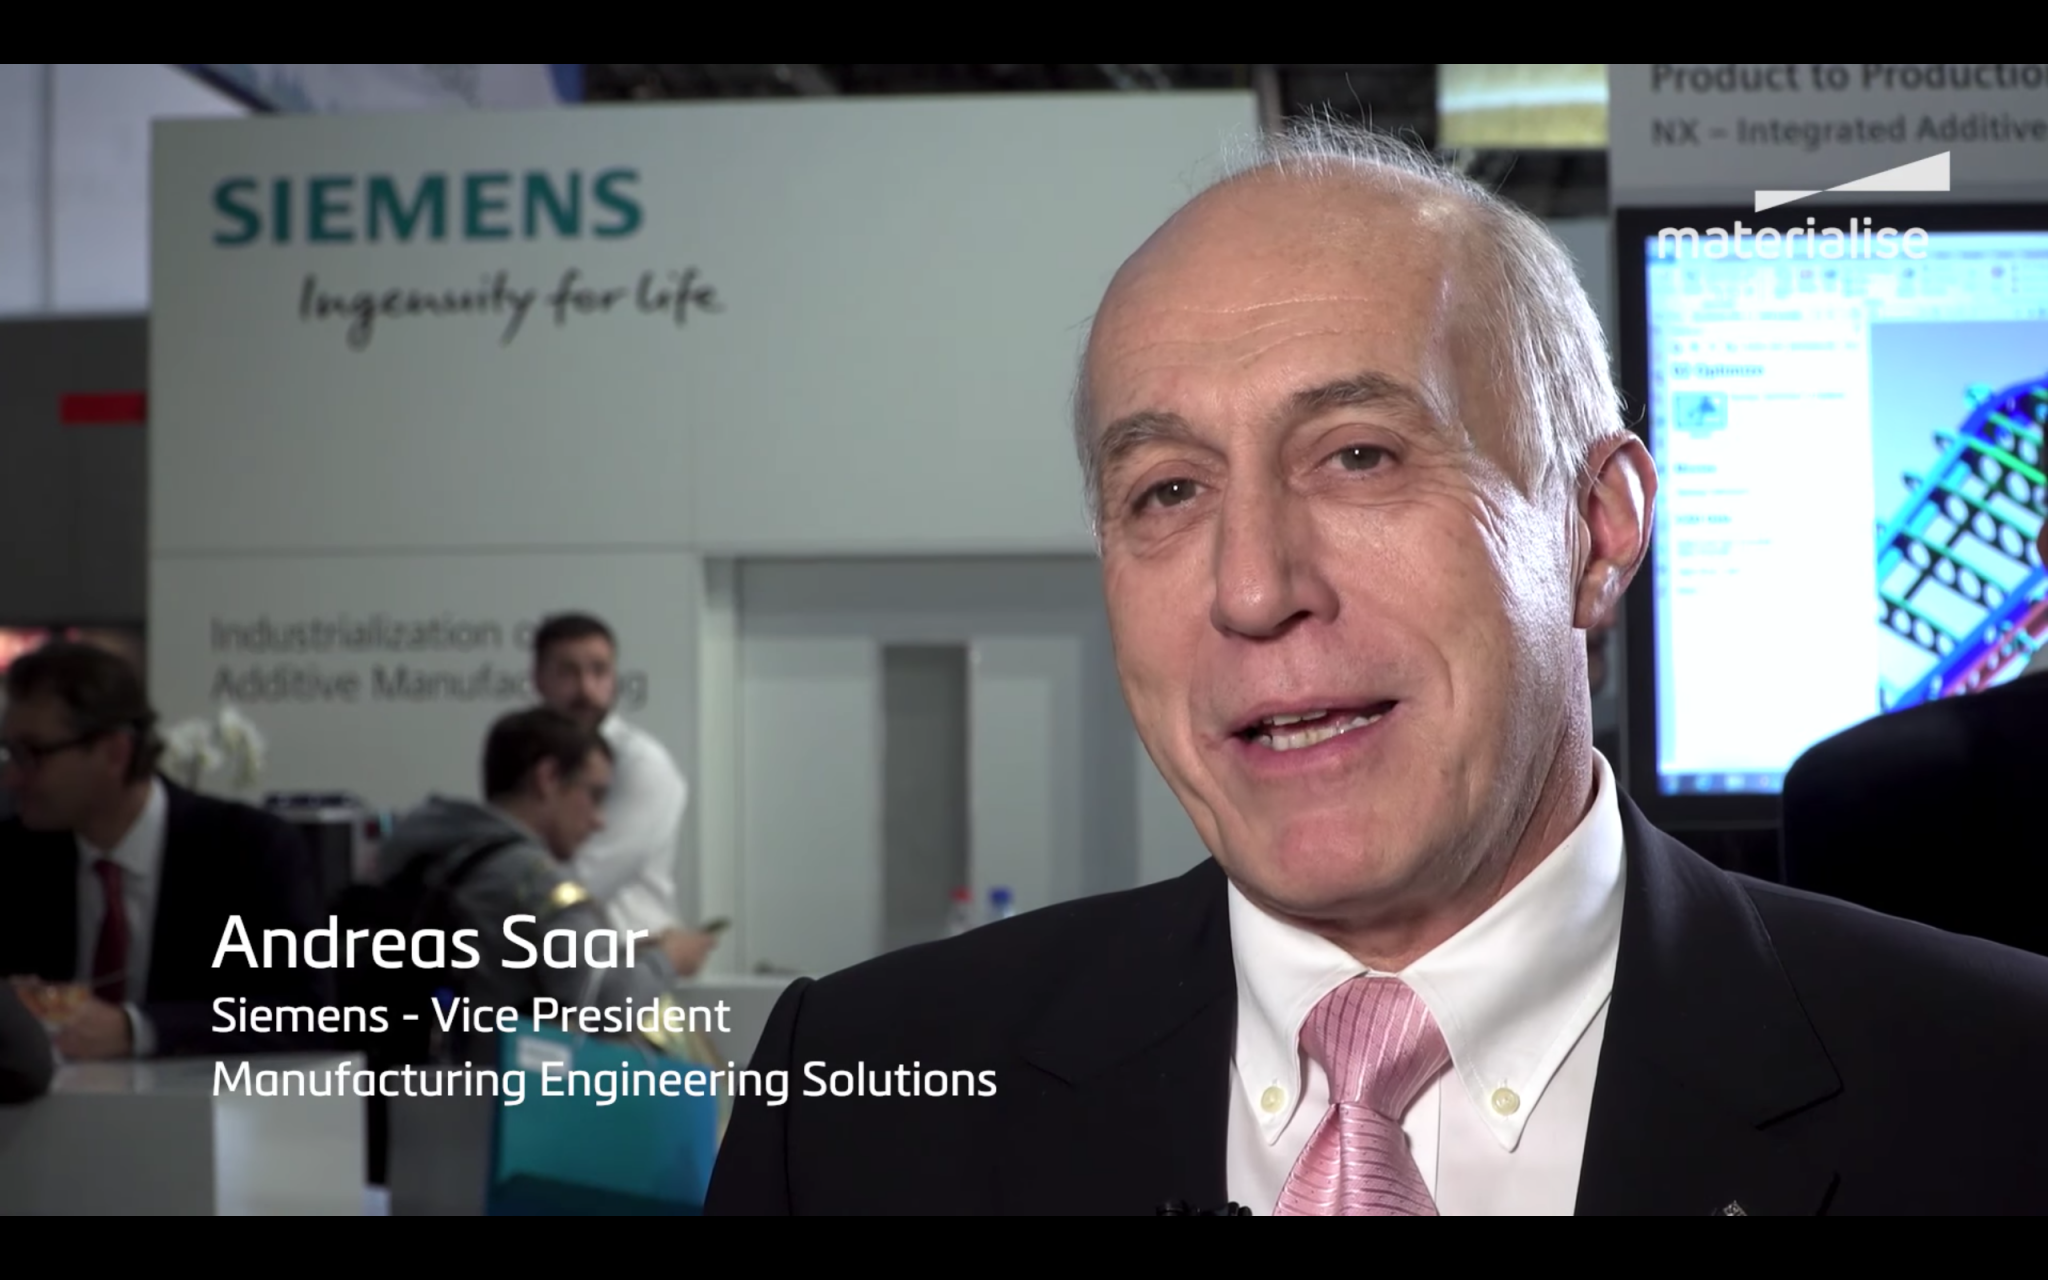 Andreas Saar of Siemens being interviewed at Formnext. Image via Materialise.